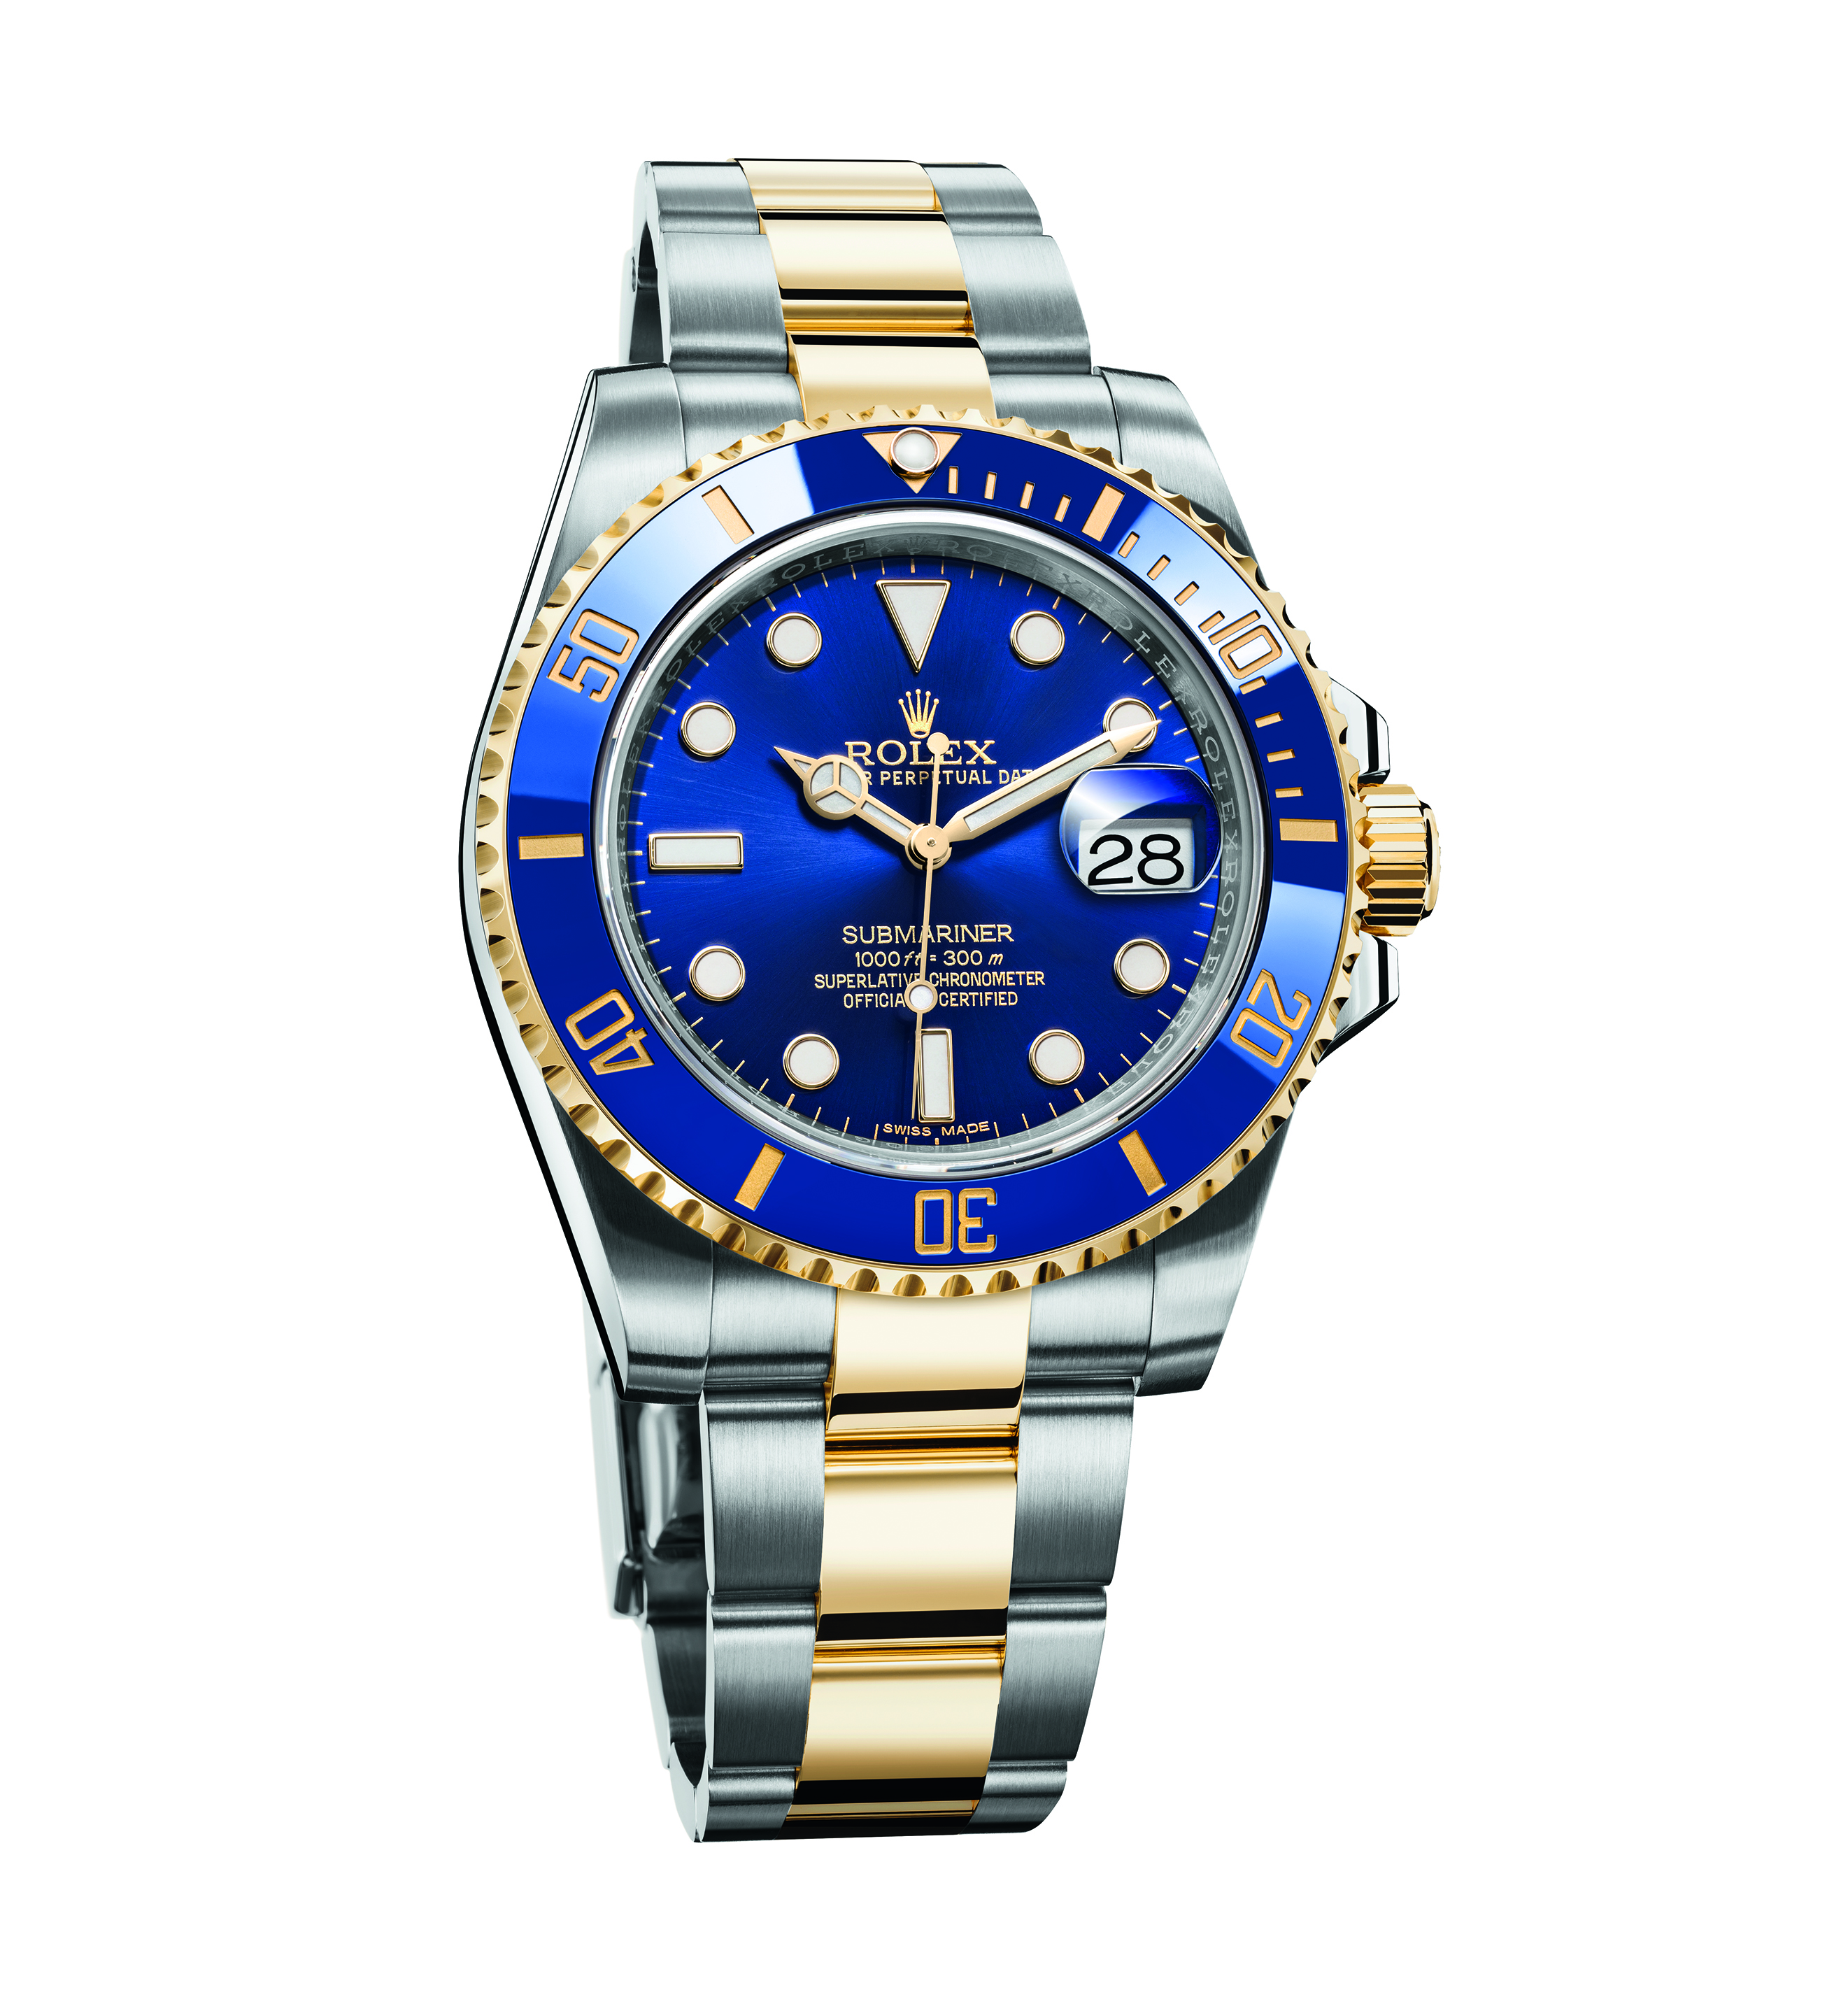 football match timepieces blog iconic blue s forever don you of and in brands everyone a part suitable guide unisex with mix that the small t holiday watch watches why ice family for is